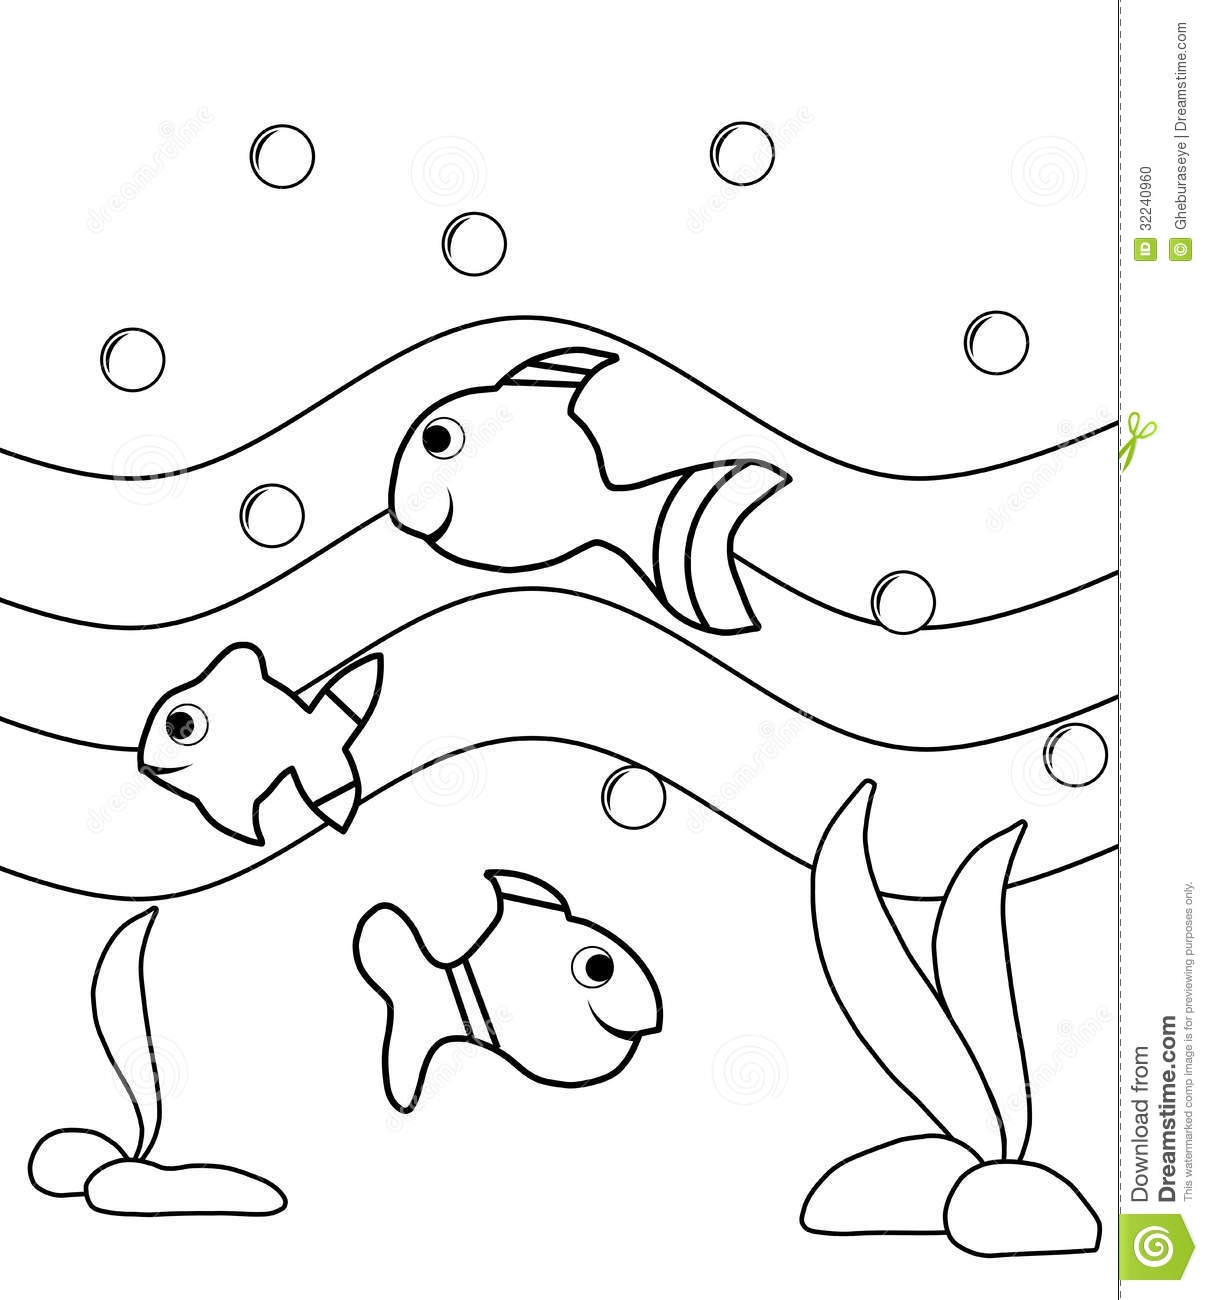 free emoji coloring pages - stock photo colorable fishes image representing some nice cartoon version project thought to be colored children image